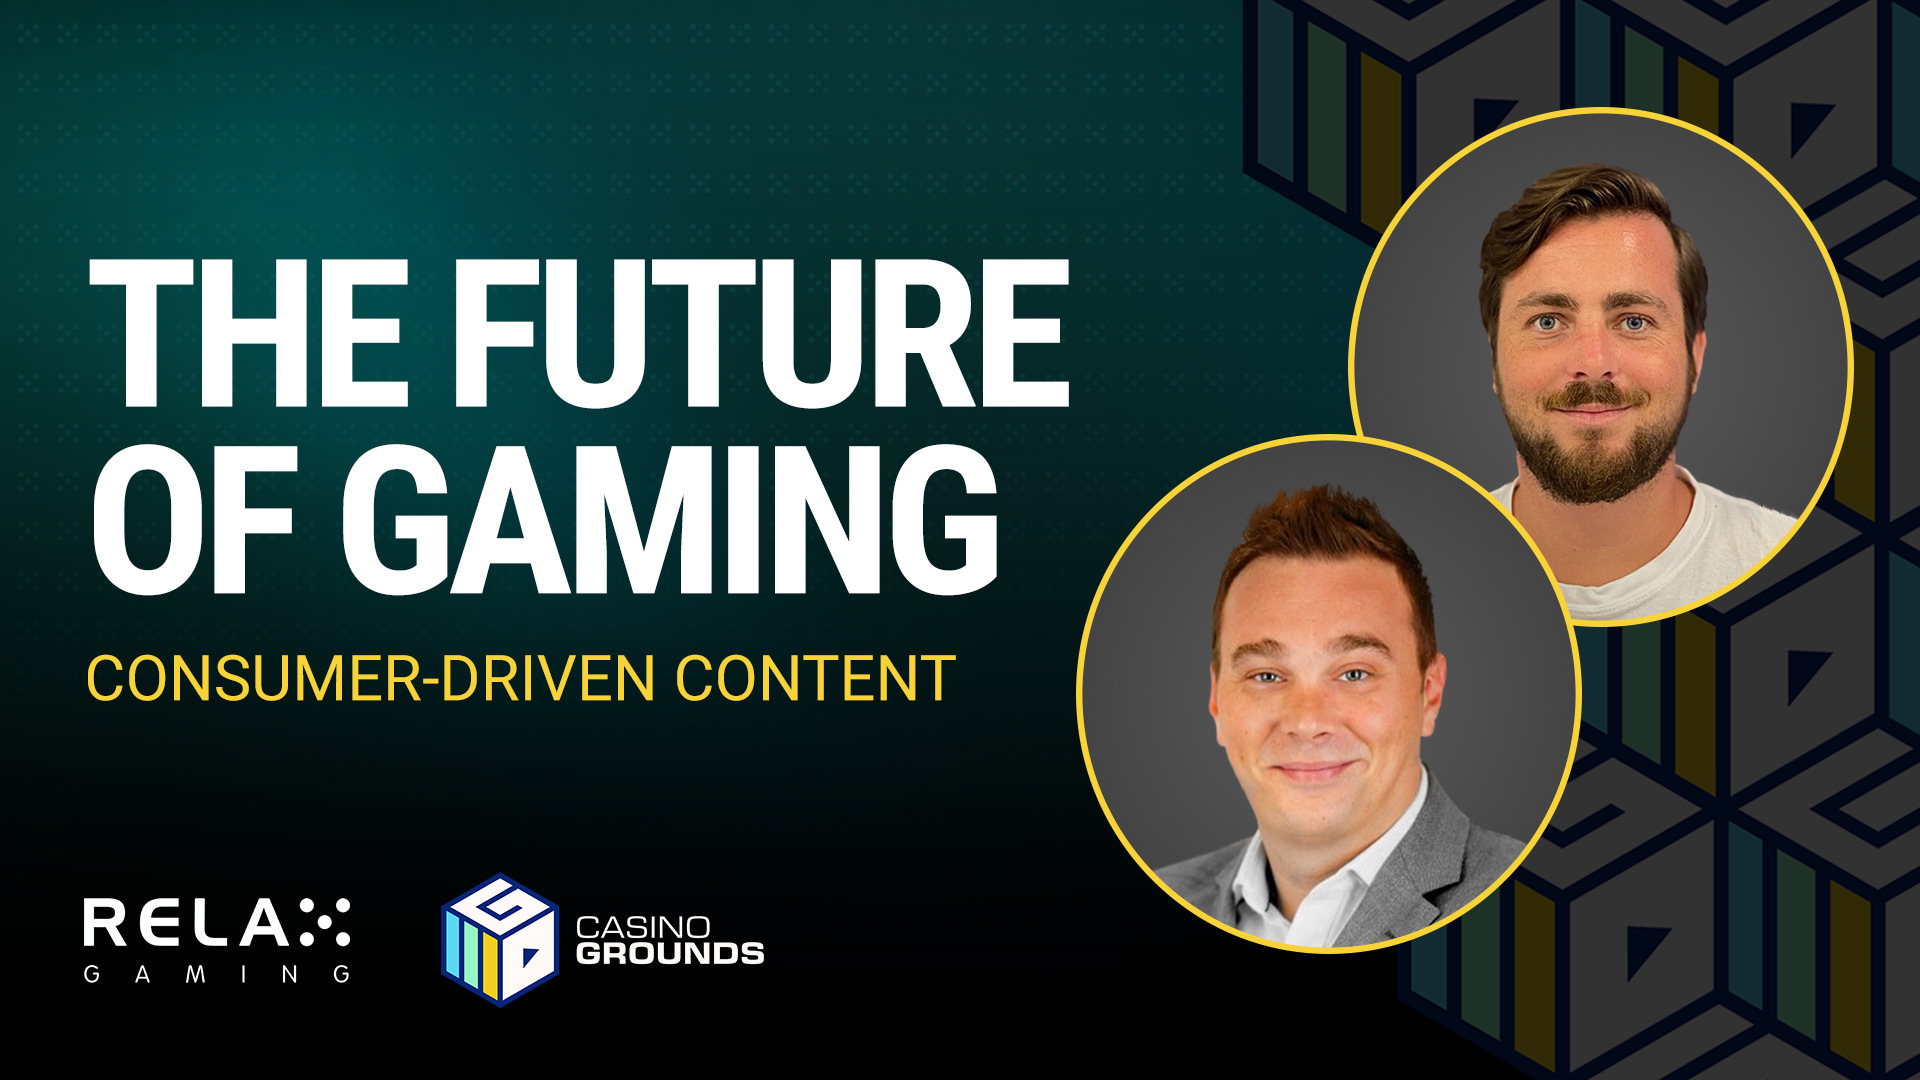 The games of the future are community-driven